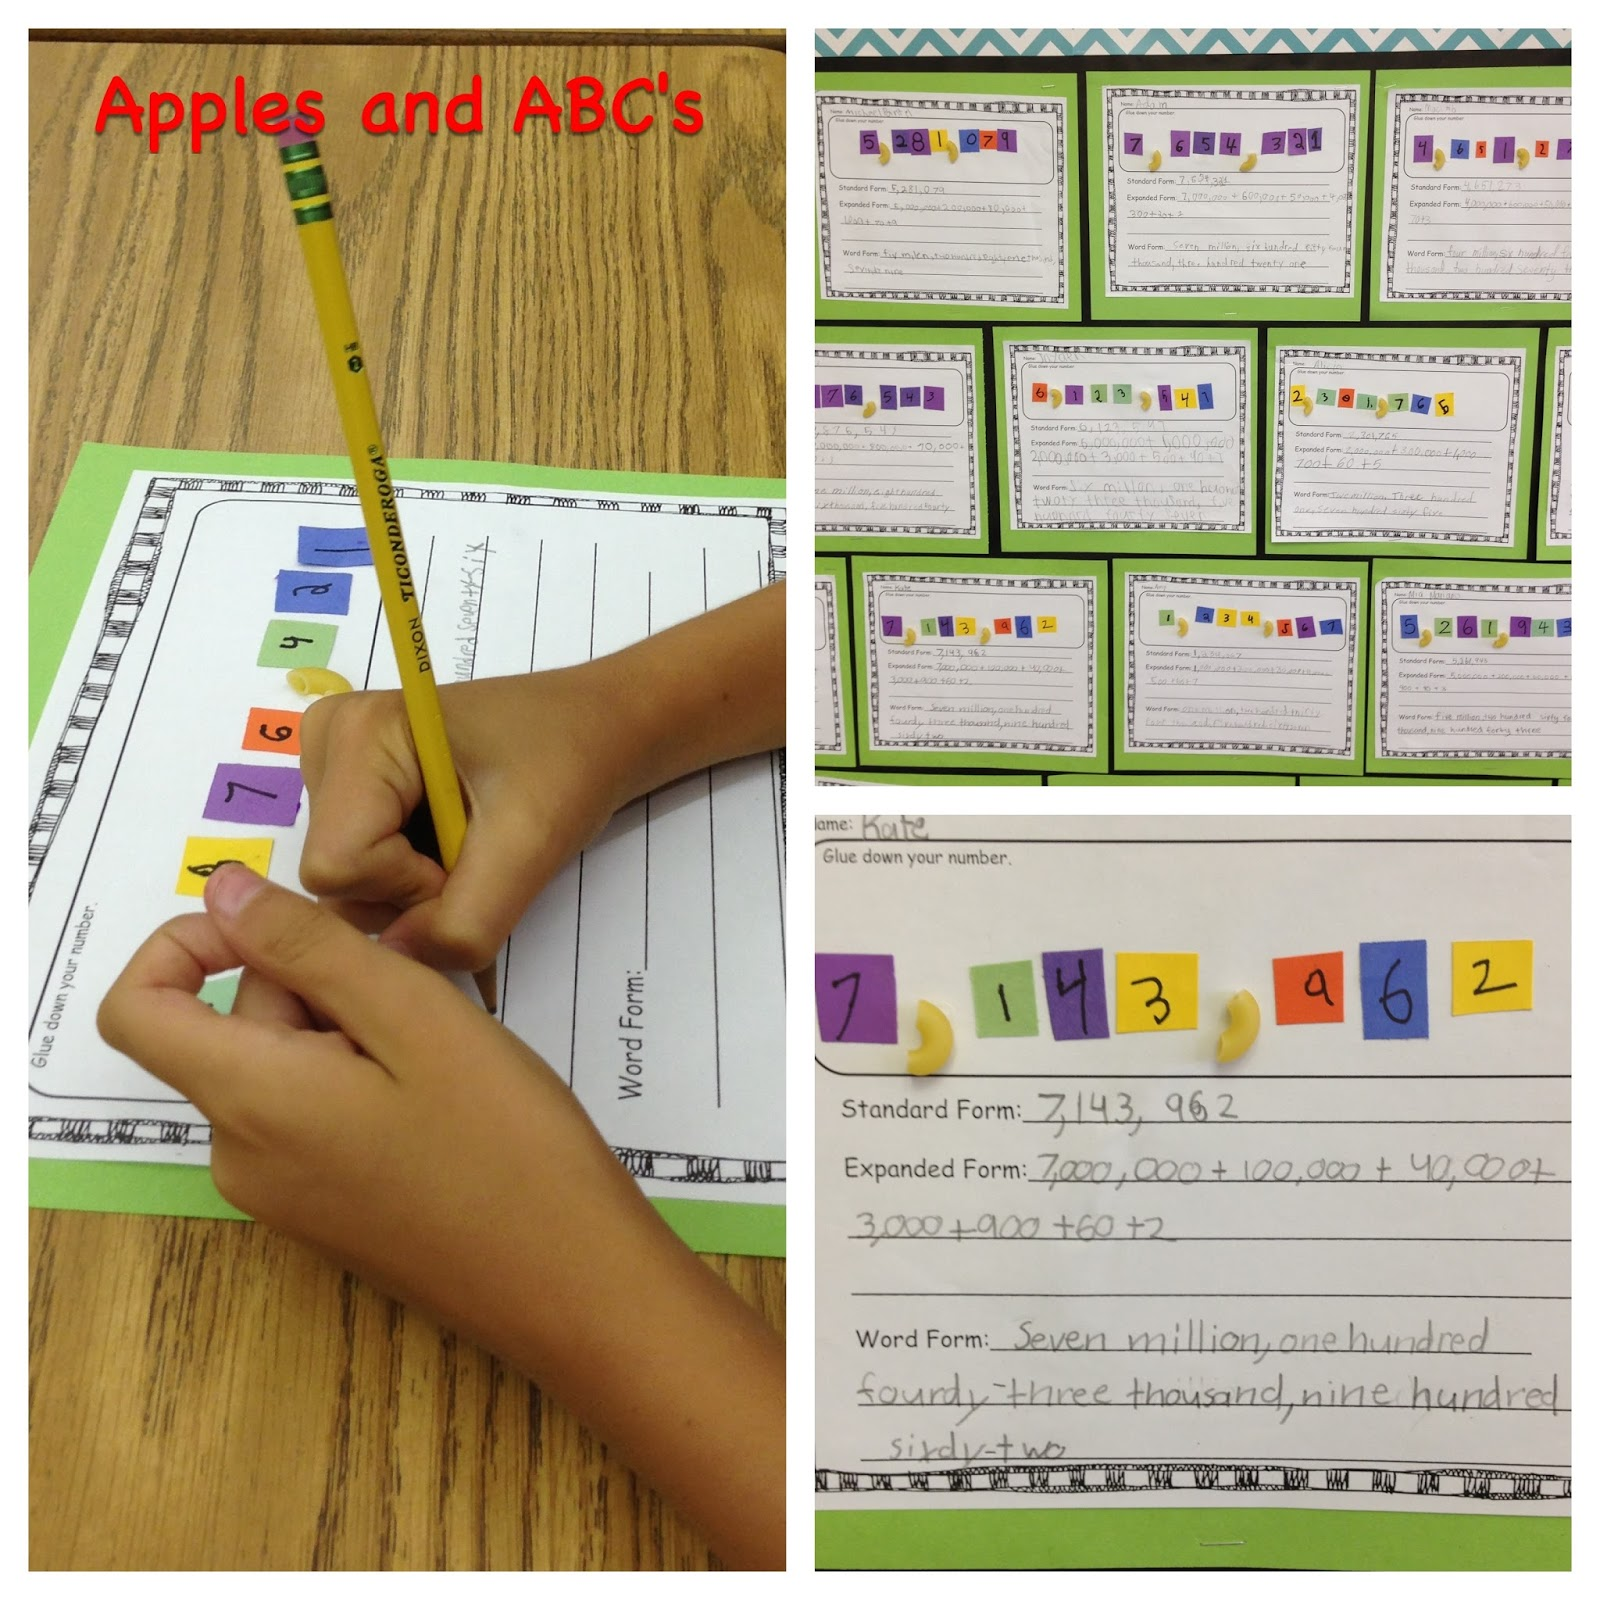 Unit form and standard form image collections standard form examples september 2013 apples and abcs number form craft falaconquin falaconquin